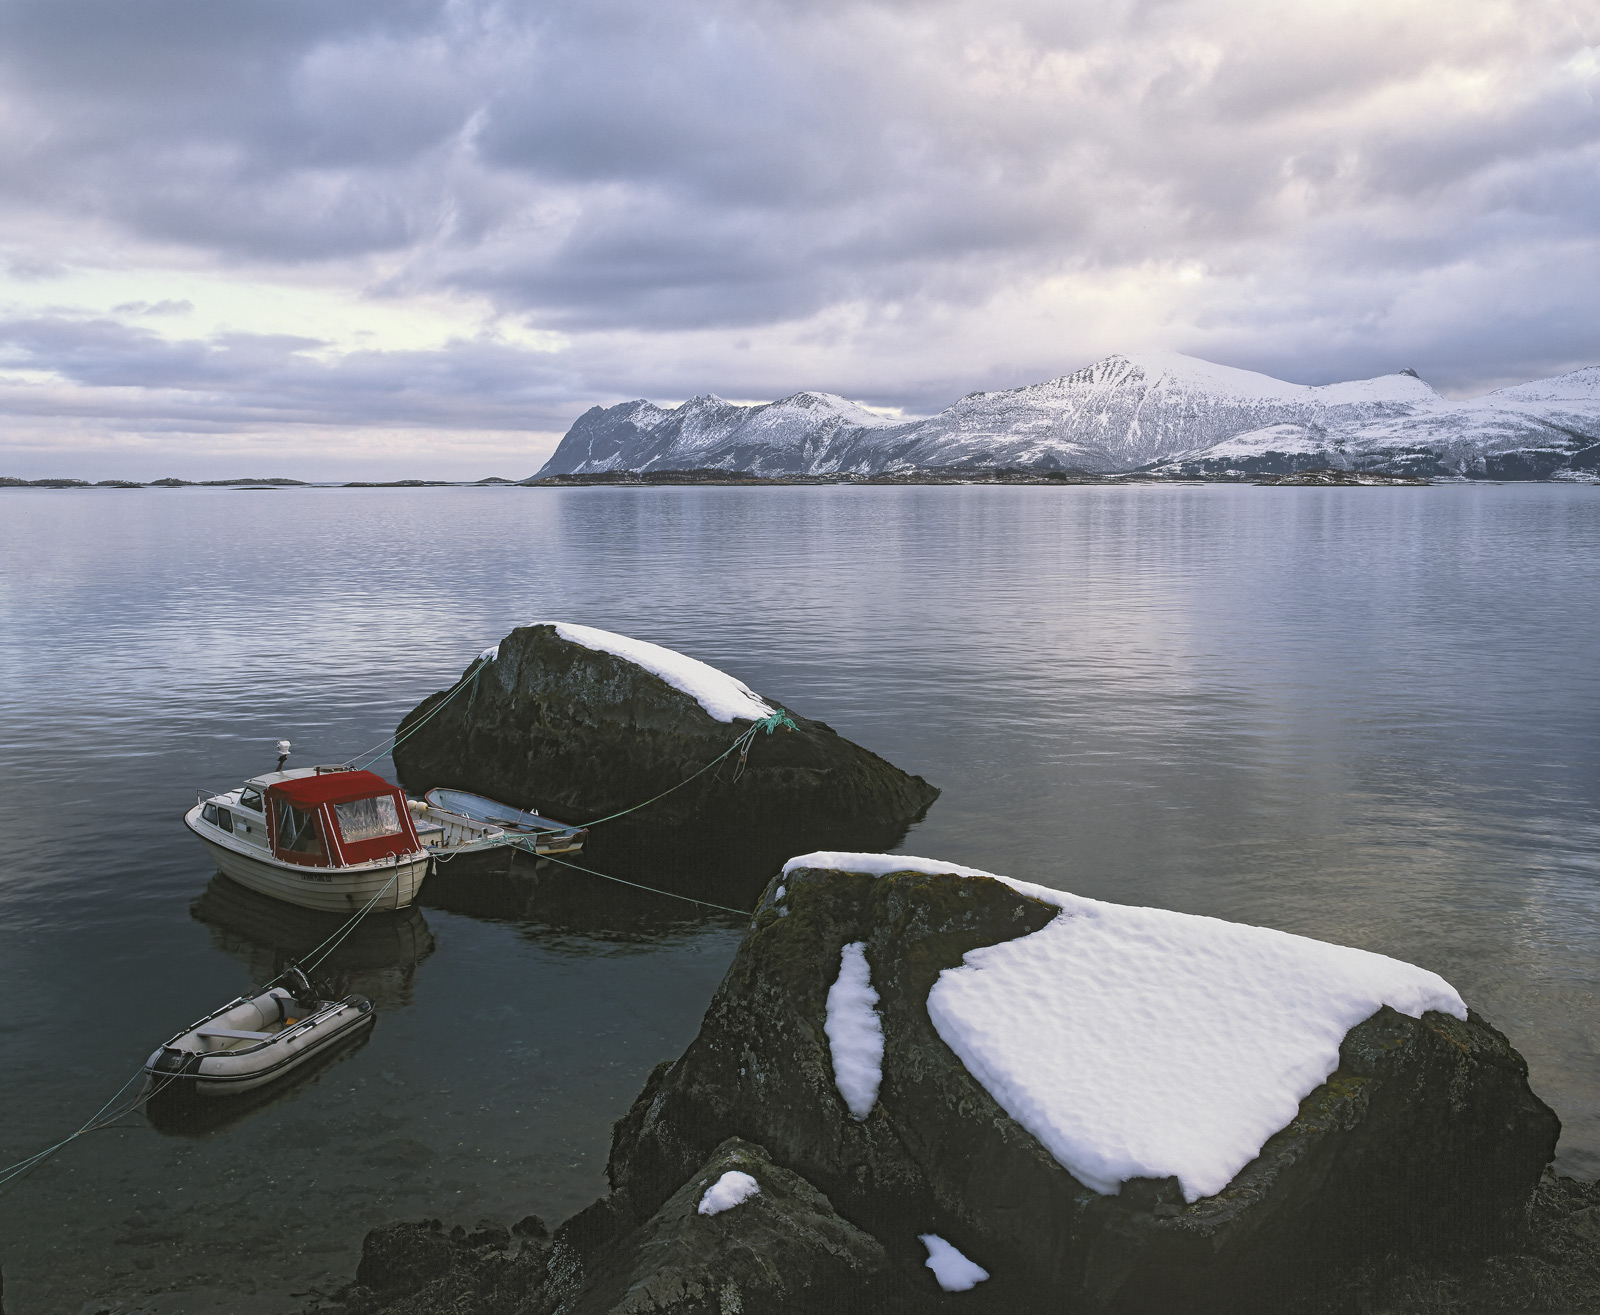 I passed by this quiet mooring in front of the two snow covered rocks on several occasions, each time wishing that the boring...